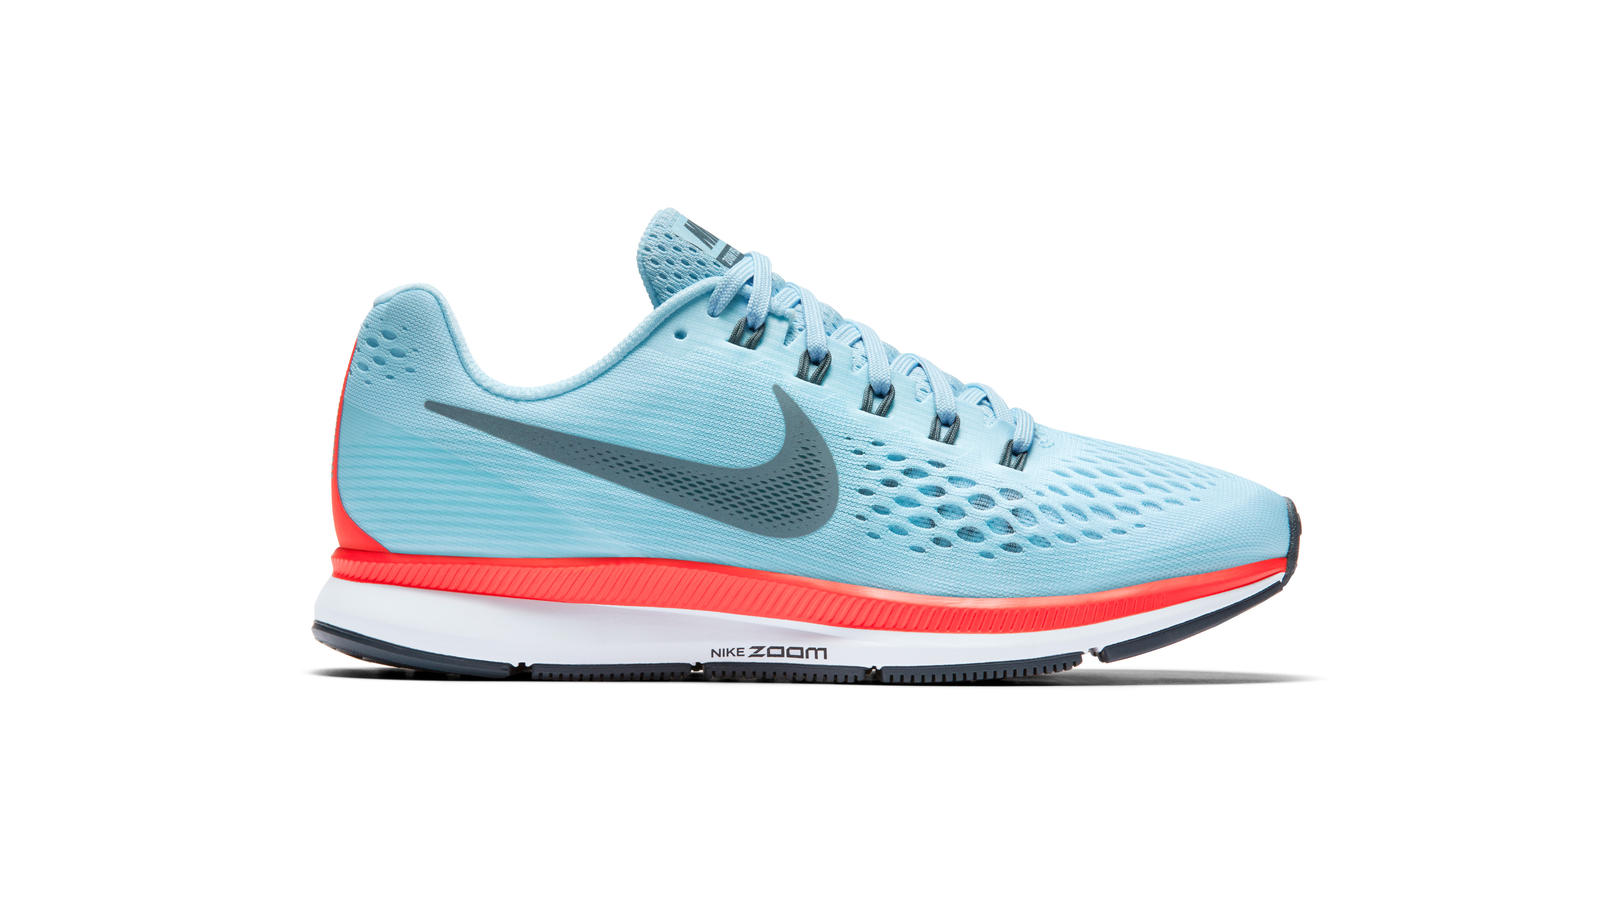 ff411d8f1e52c nike air fly zoom cheap   OFF70% The Largest Catalog Discounts